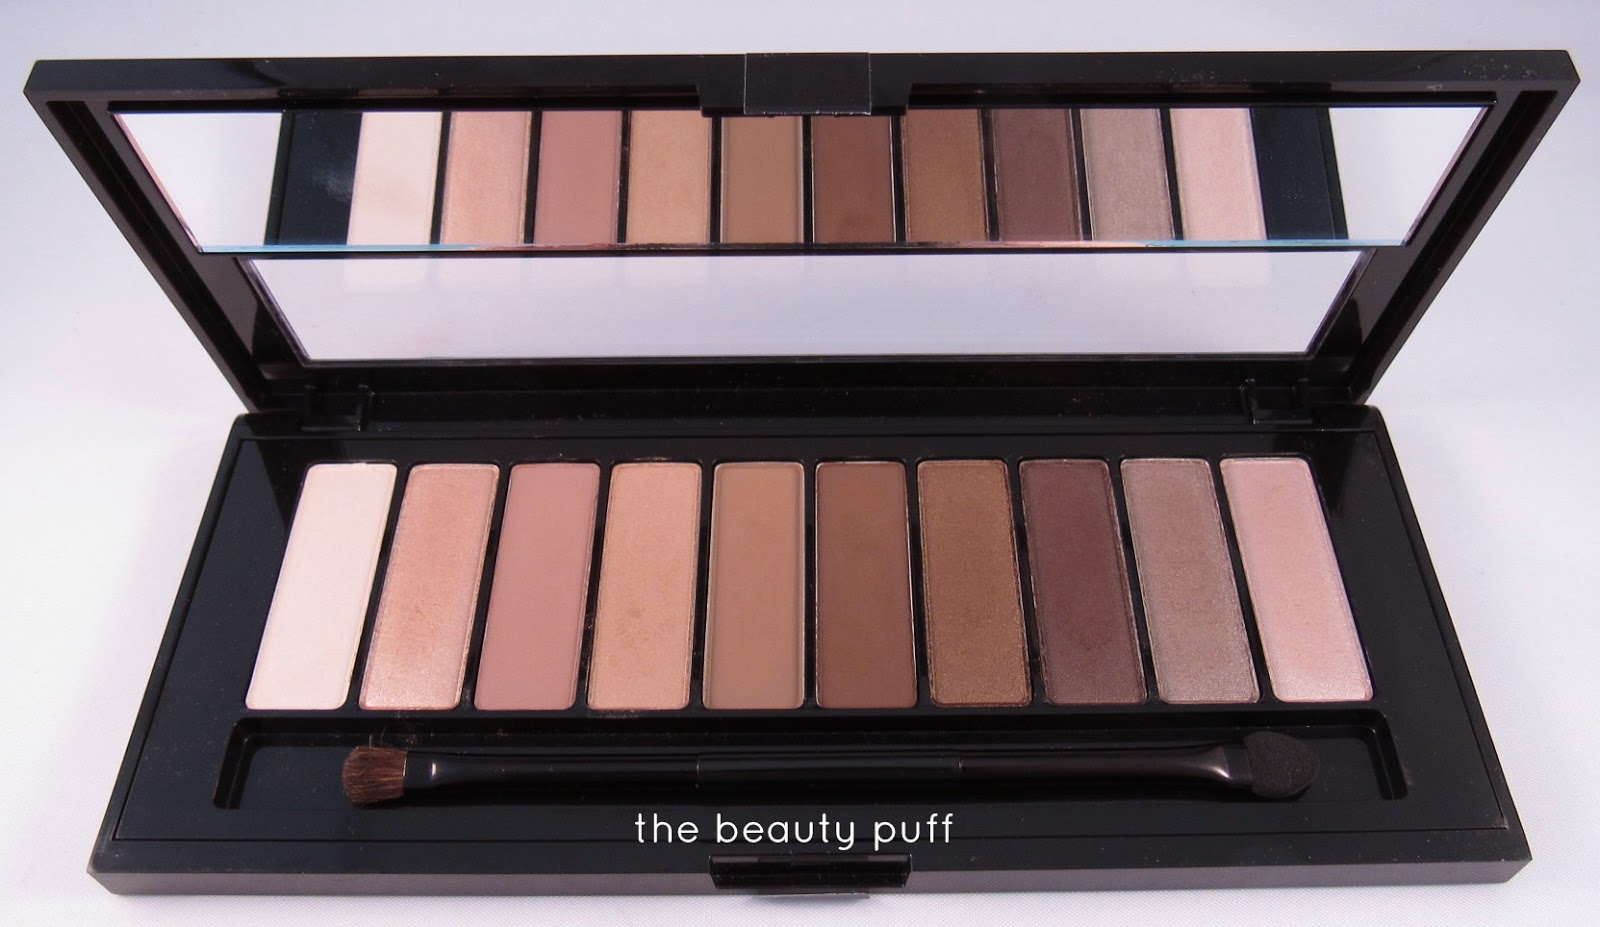 l'oreal la palette nude 1  - the beauty puff